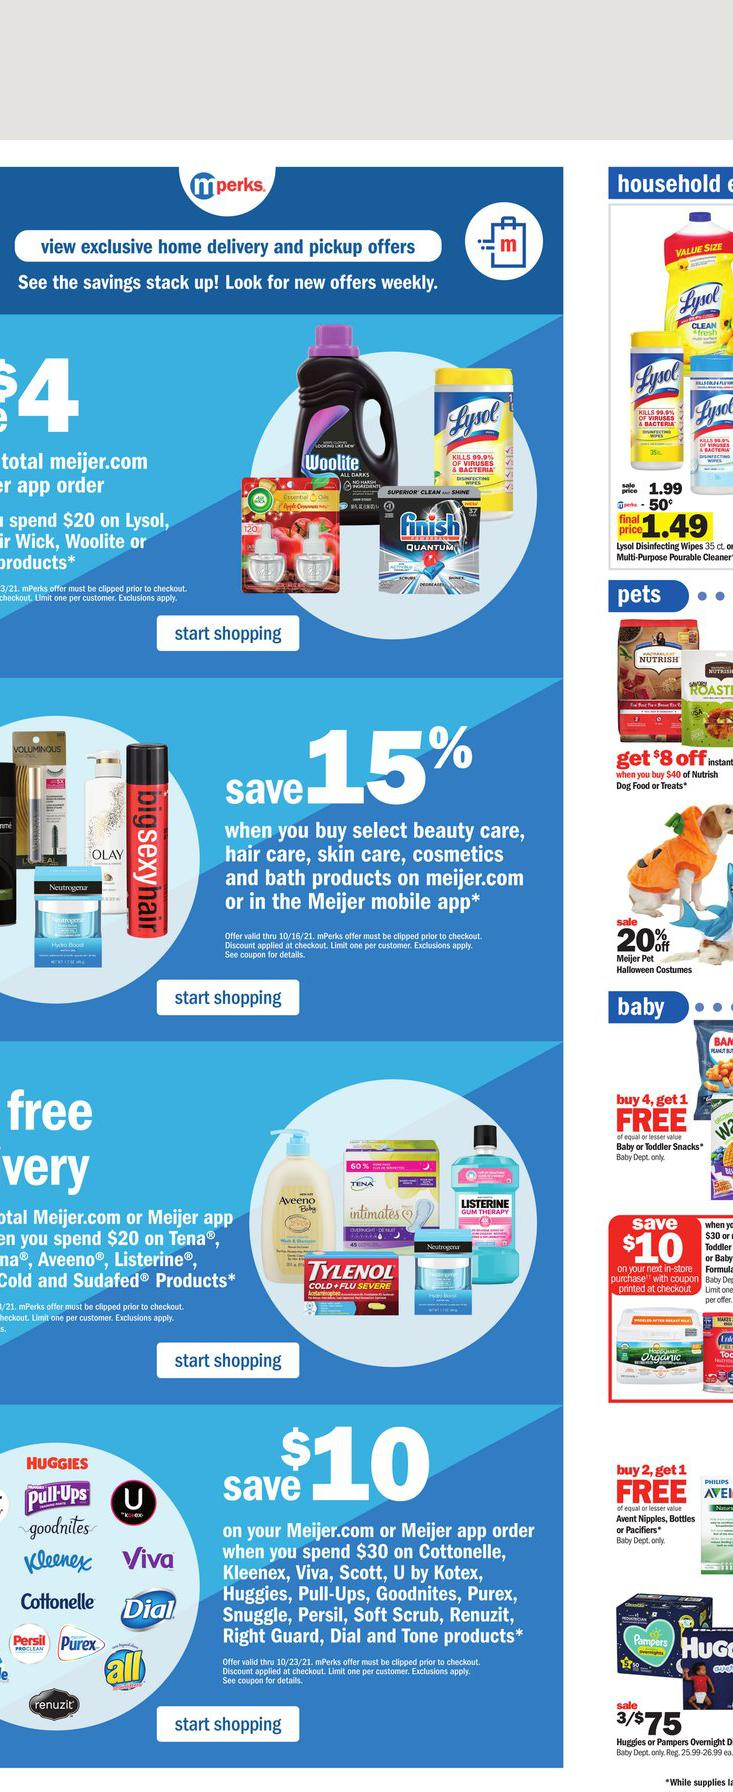 10.10.2021 Meijer ad 13. page